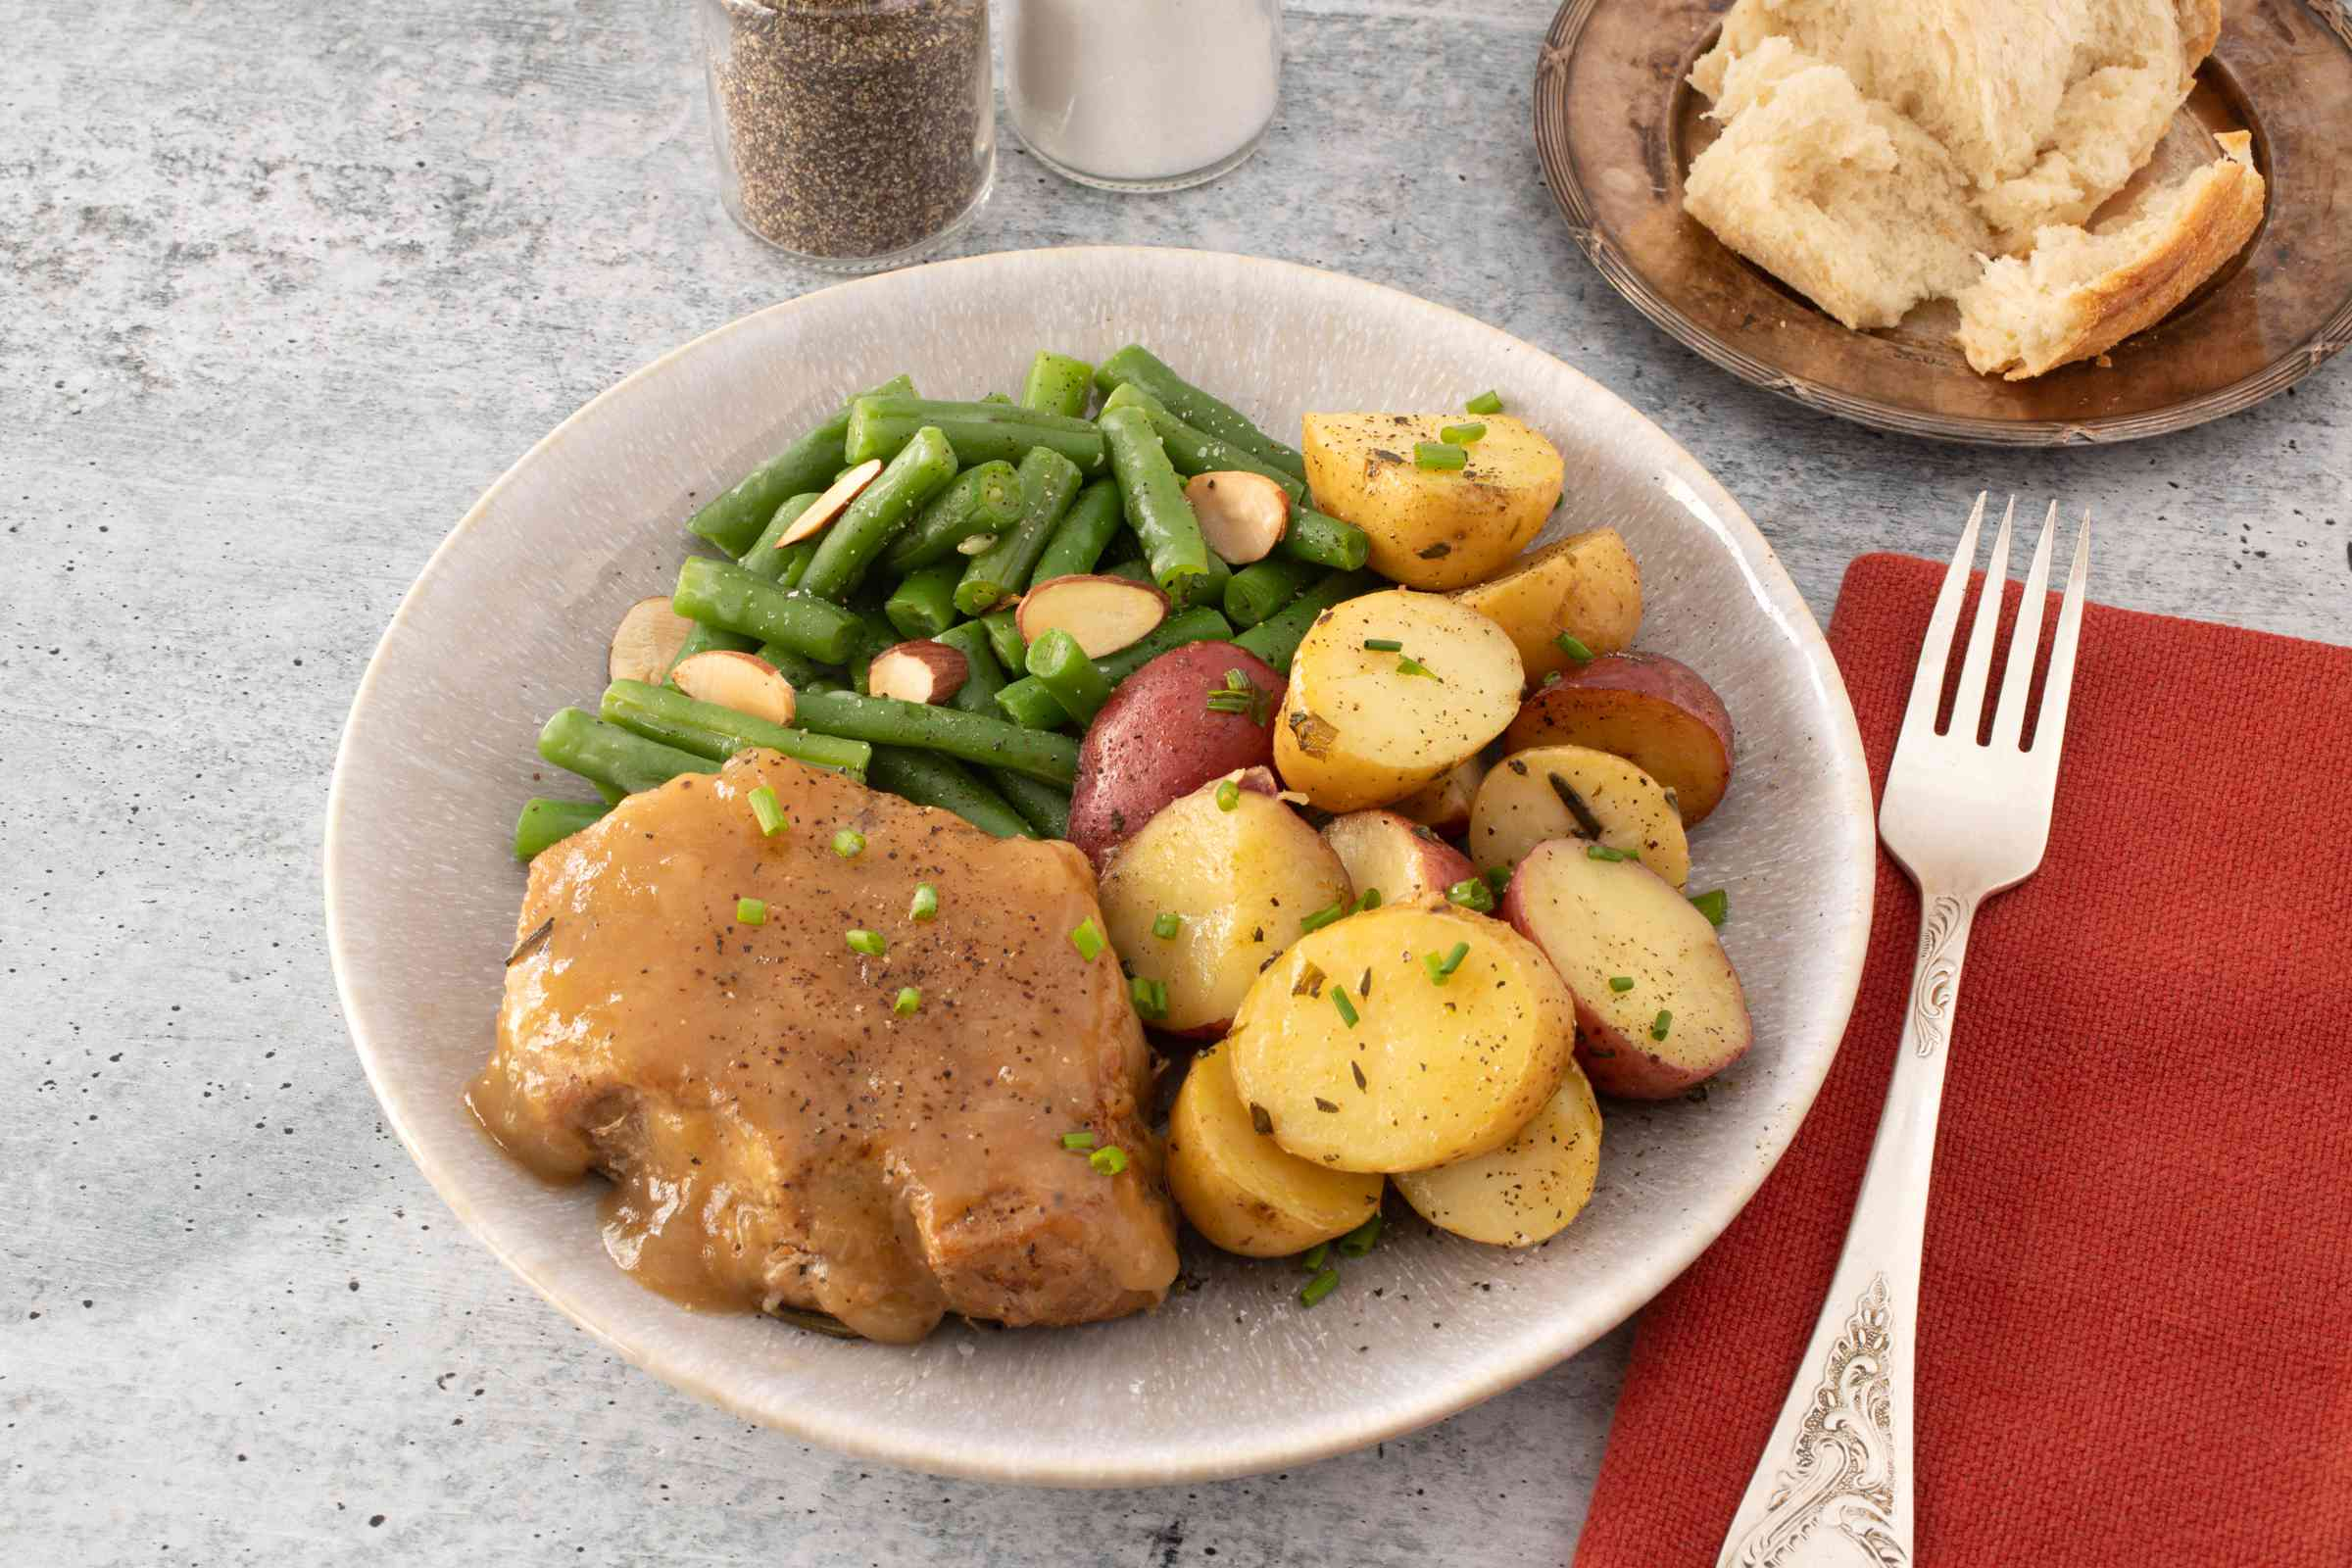 Serving of Instant Pot pork chops with potatoes